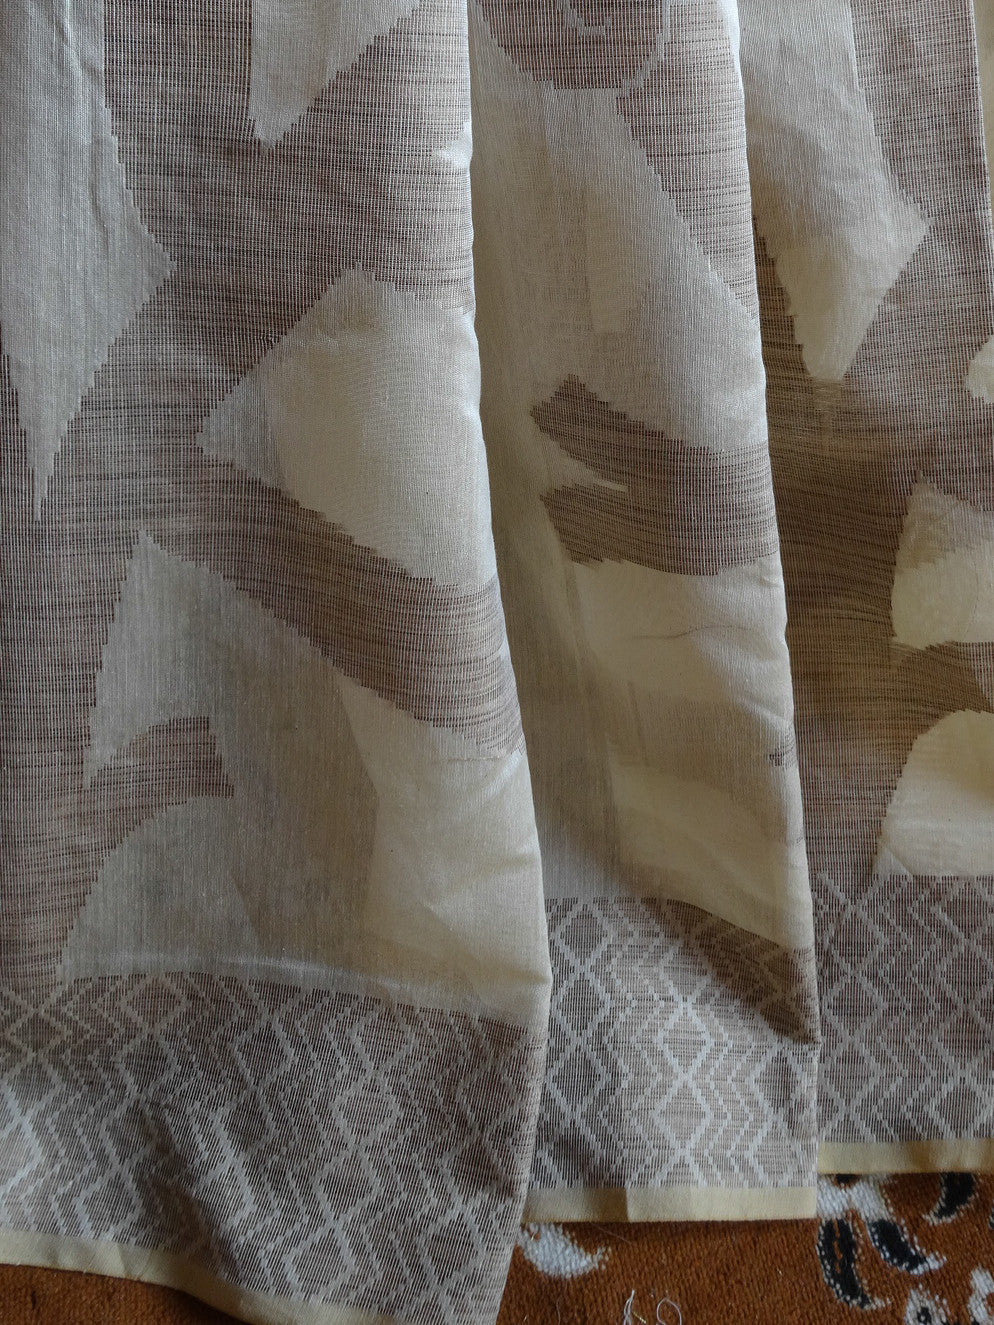 Banarasee/Banarasee Silk Cotton Saree Tree Design Khichha Border-Beige